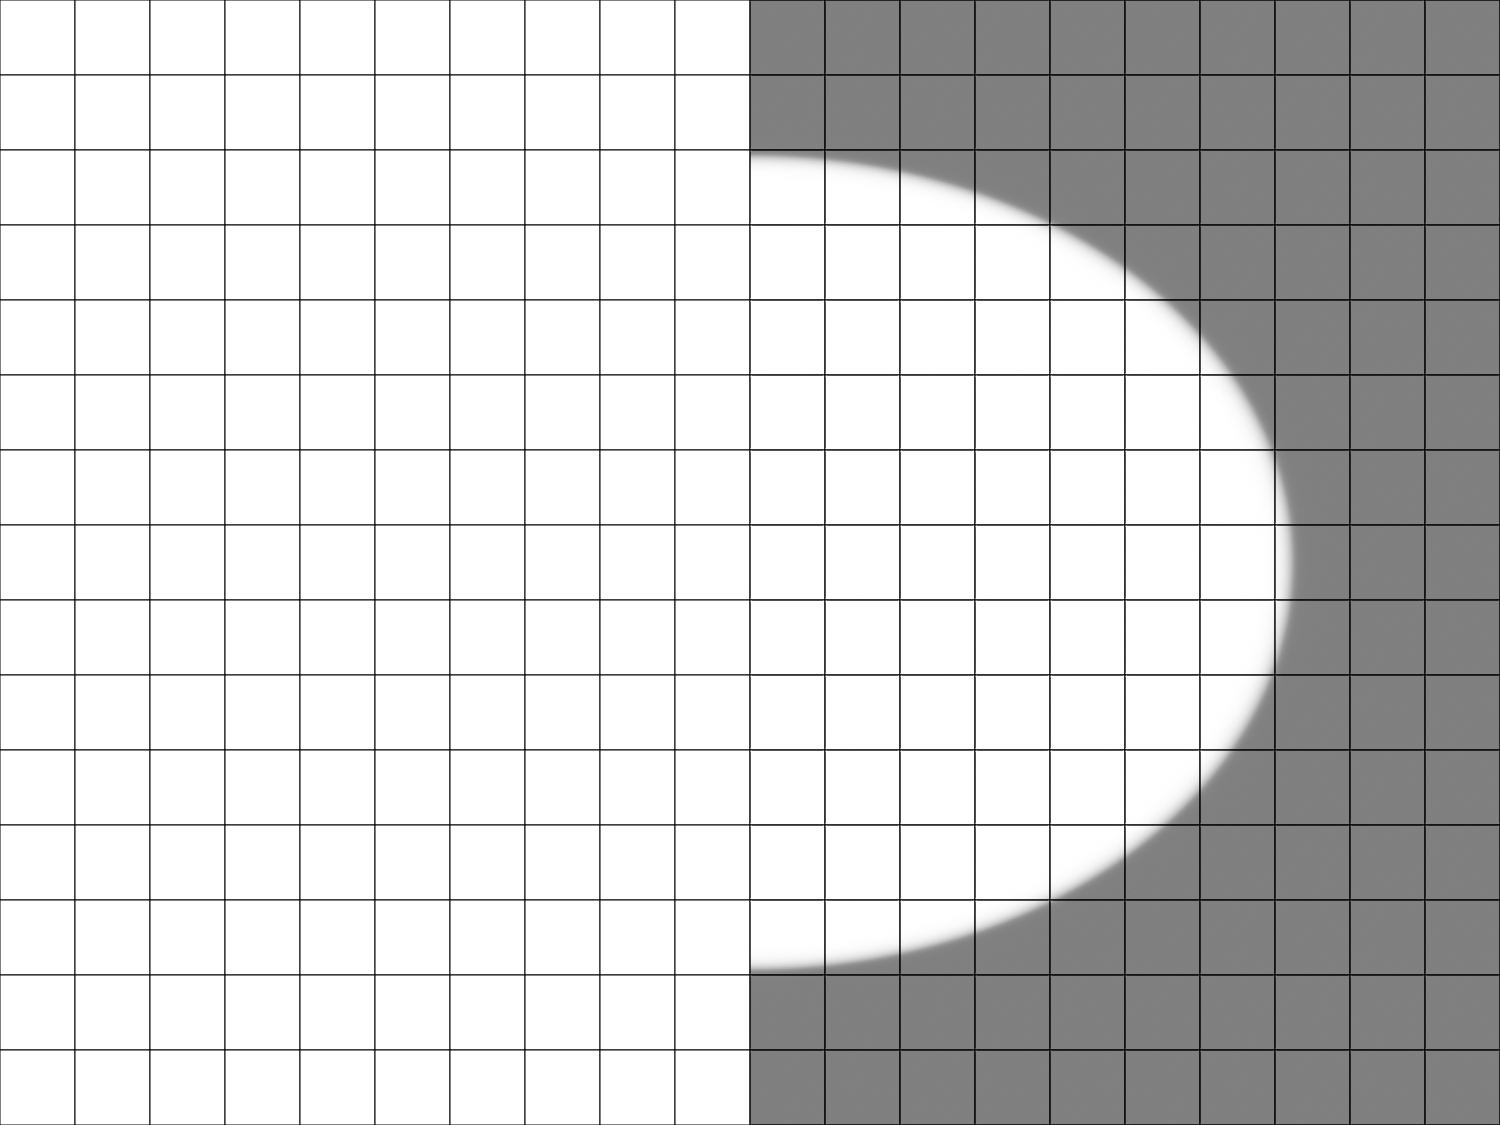 Image: Amount -50, Midpoint 0, Roundness 0, Feather 0